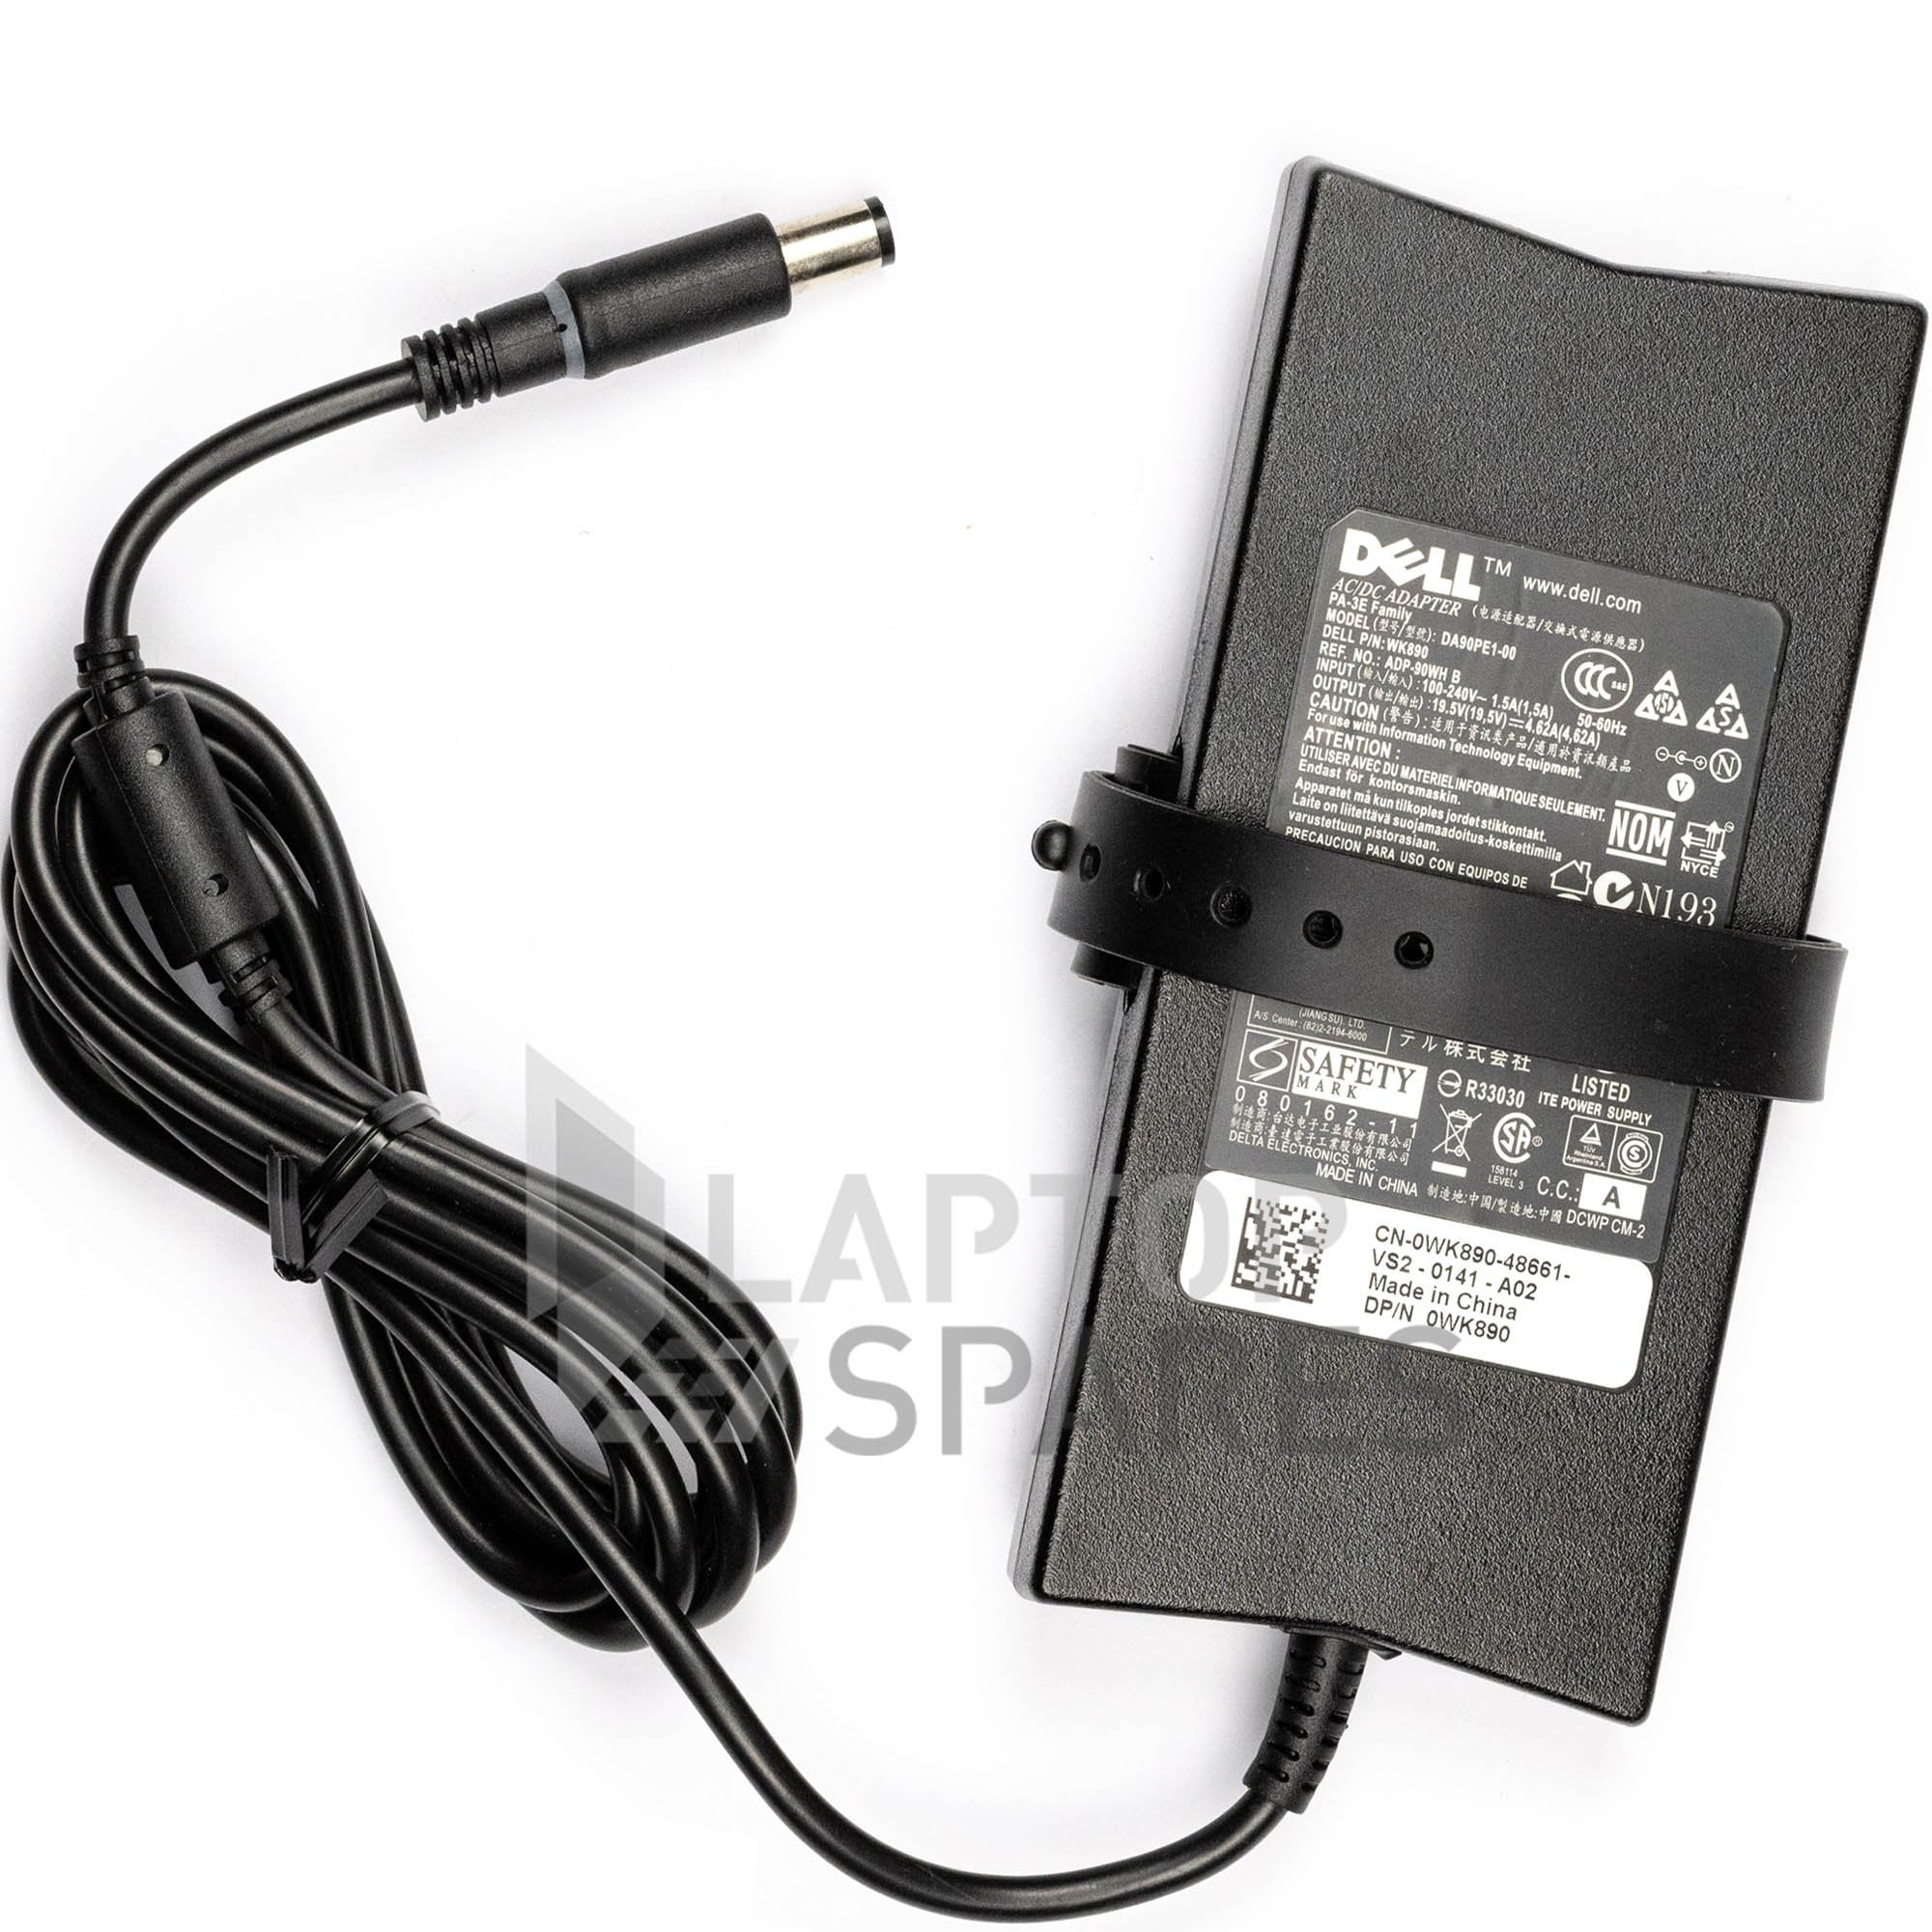 Dell Inspiron One 2020 2205 2305 Laptop Slim AC Adapter Charger